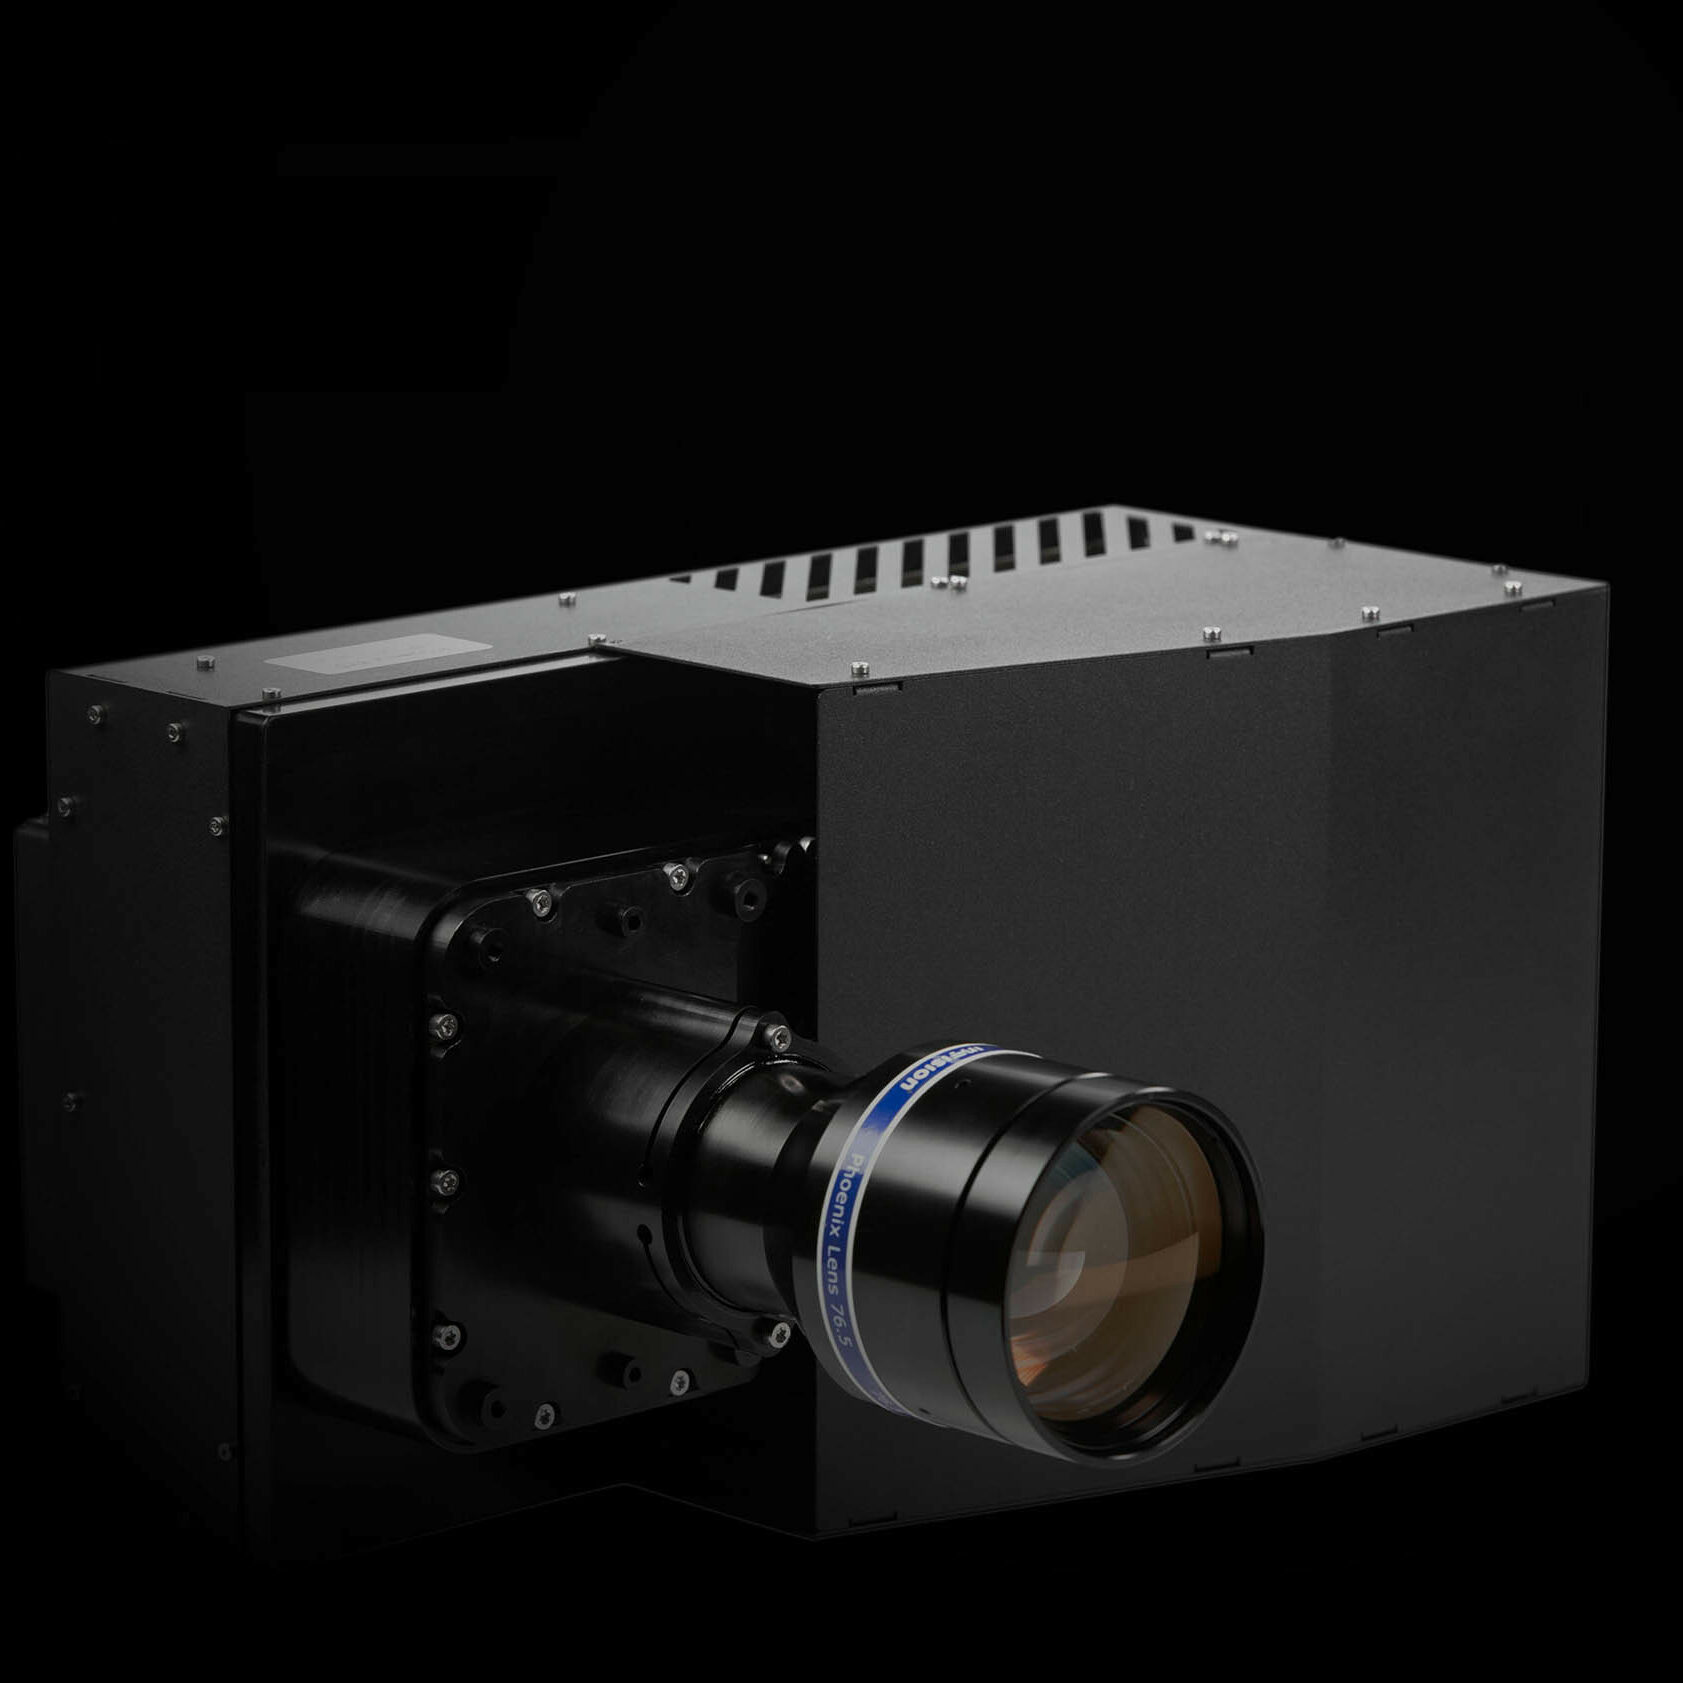 Phoenix is the first industrial 4K UV light engine. Its available as 405nm 4k UV projector and also for other wavelenght.